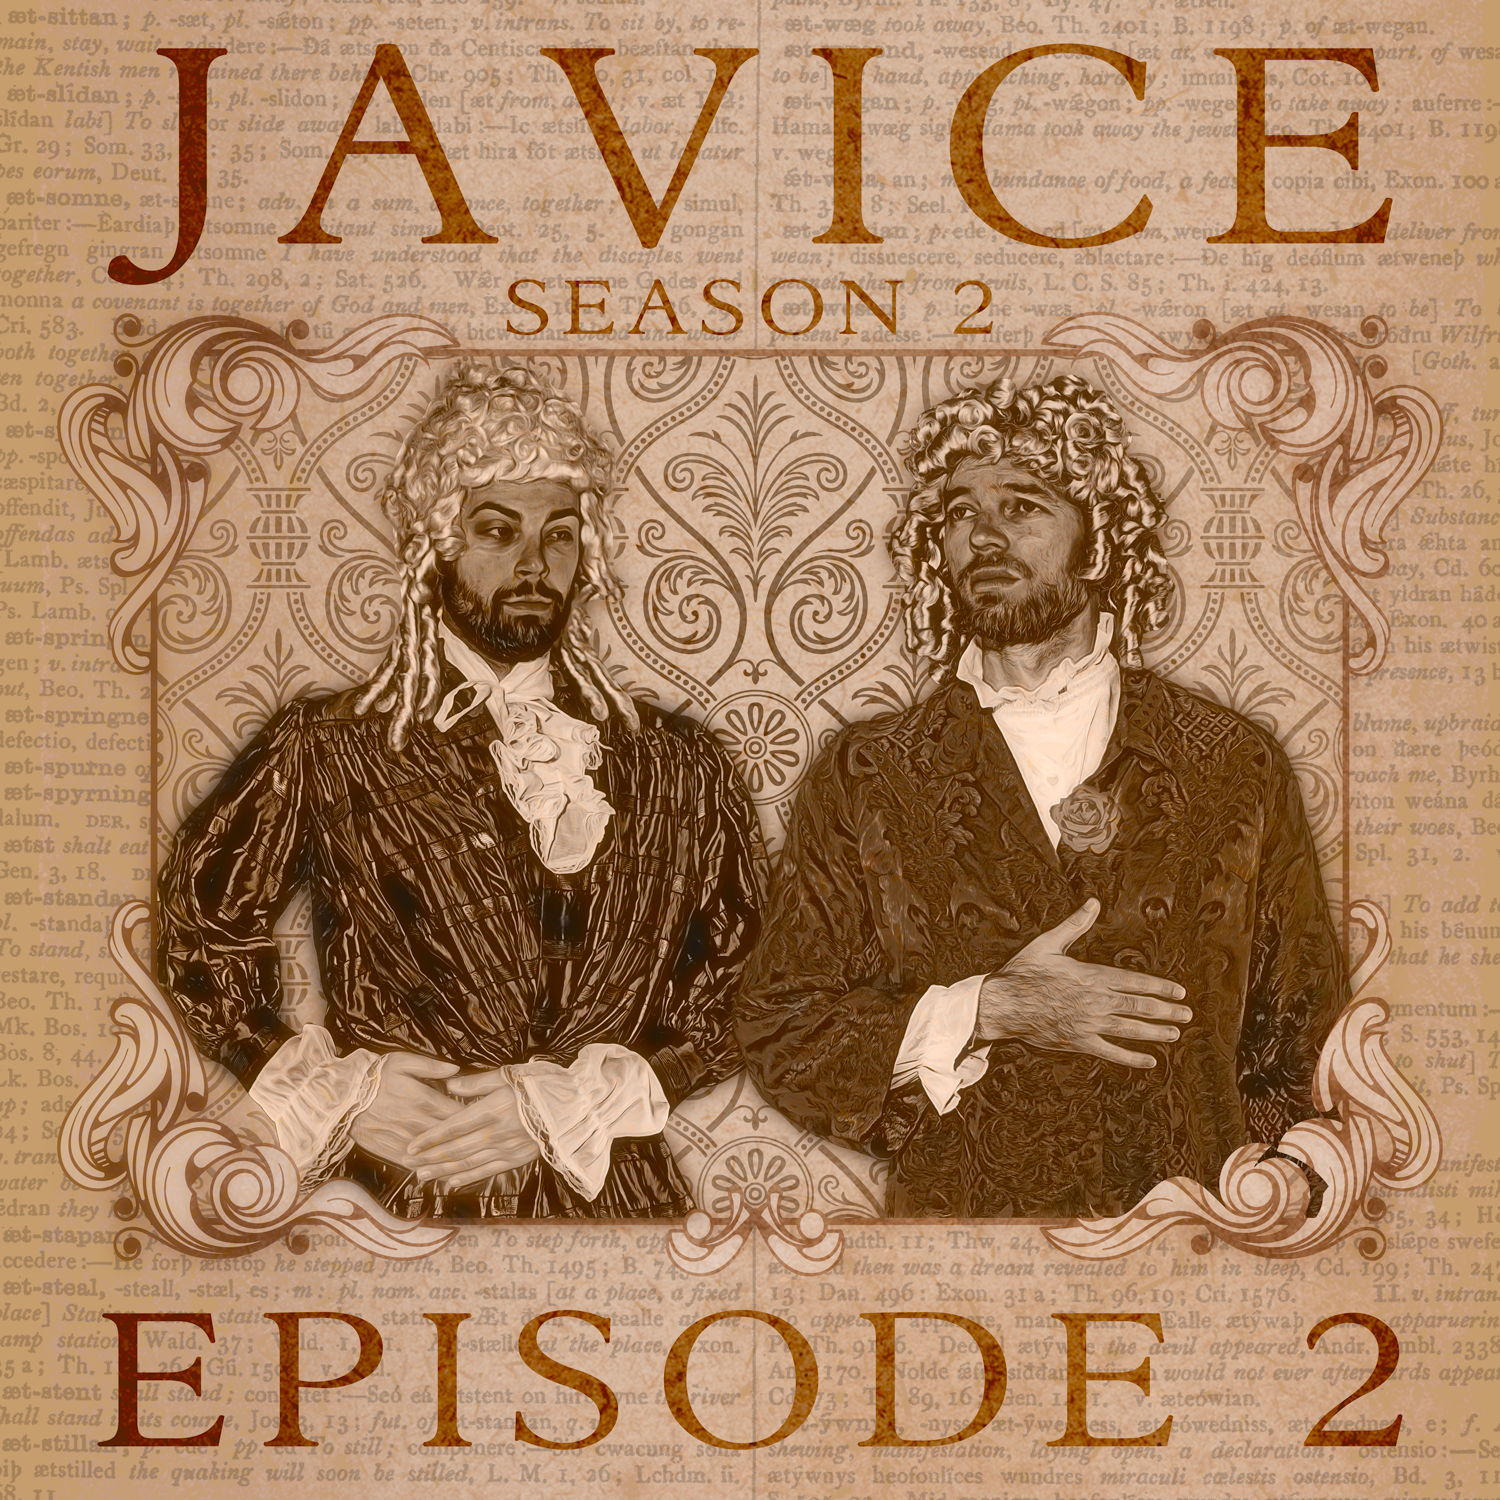 JAVICE PODCAST - Season 2 - Episode 2